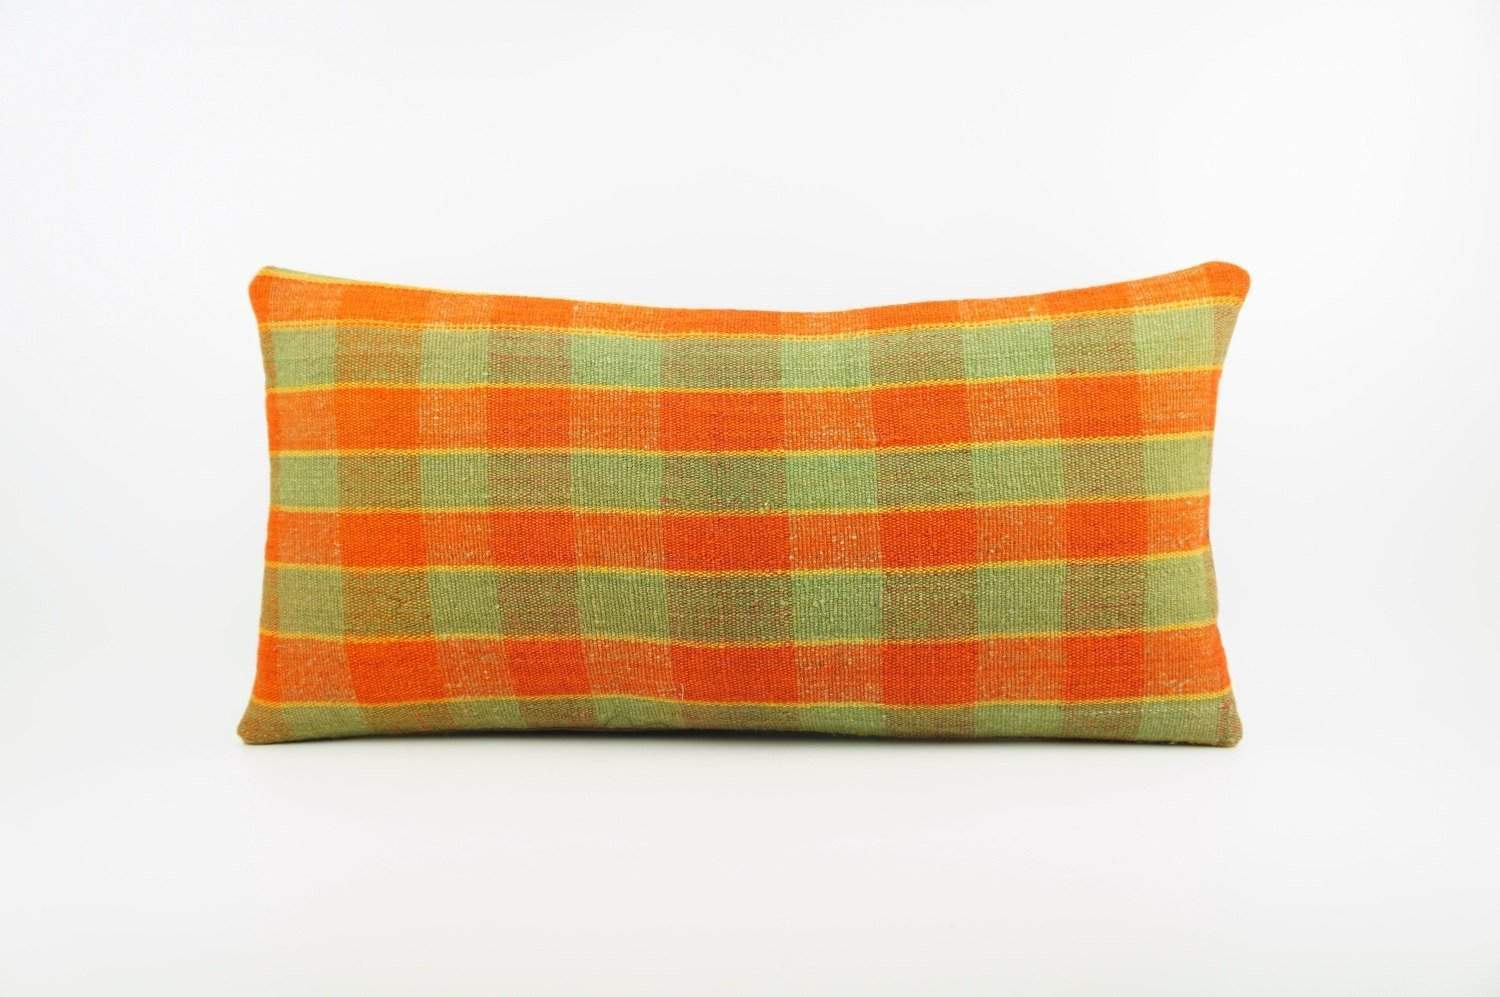 12x24 Vintage Hand Woven Kilim Pillow Lumbar pastel, checkered, plaid, orange green 1859